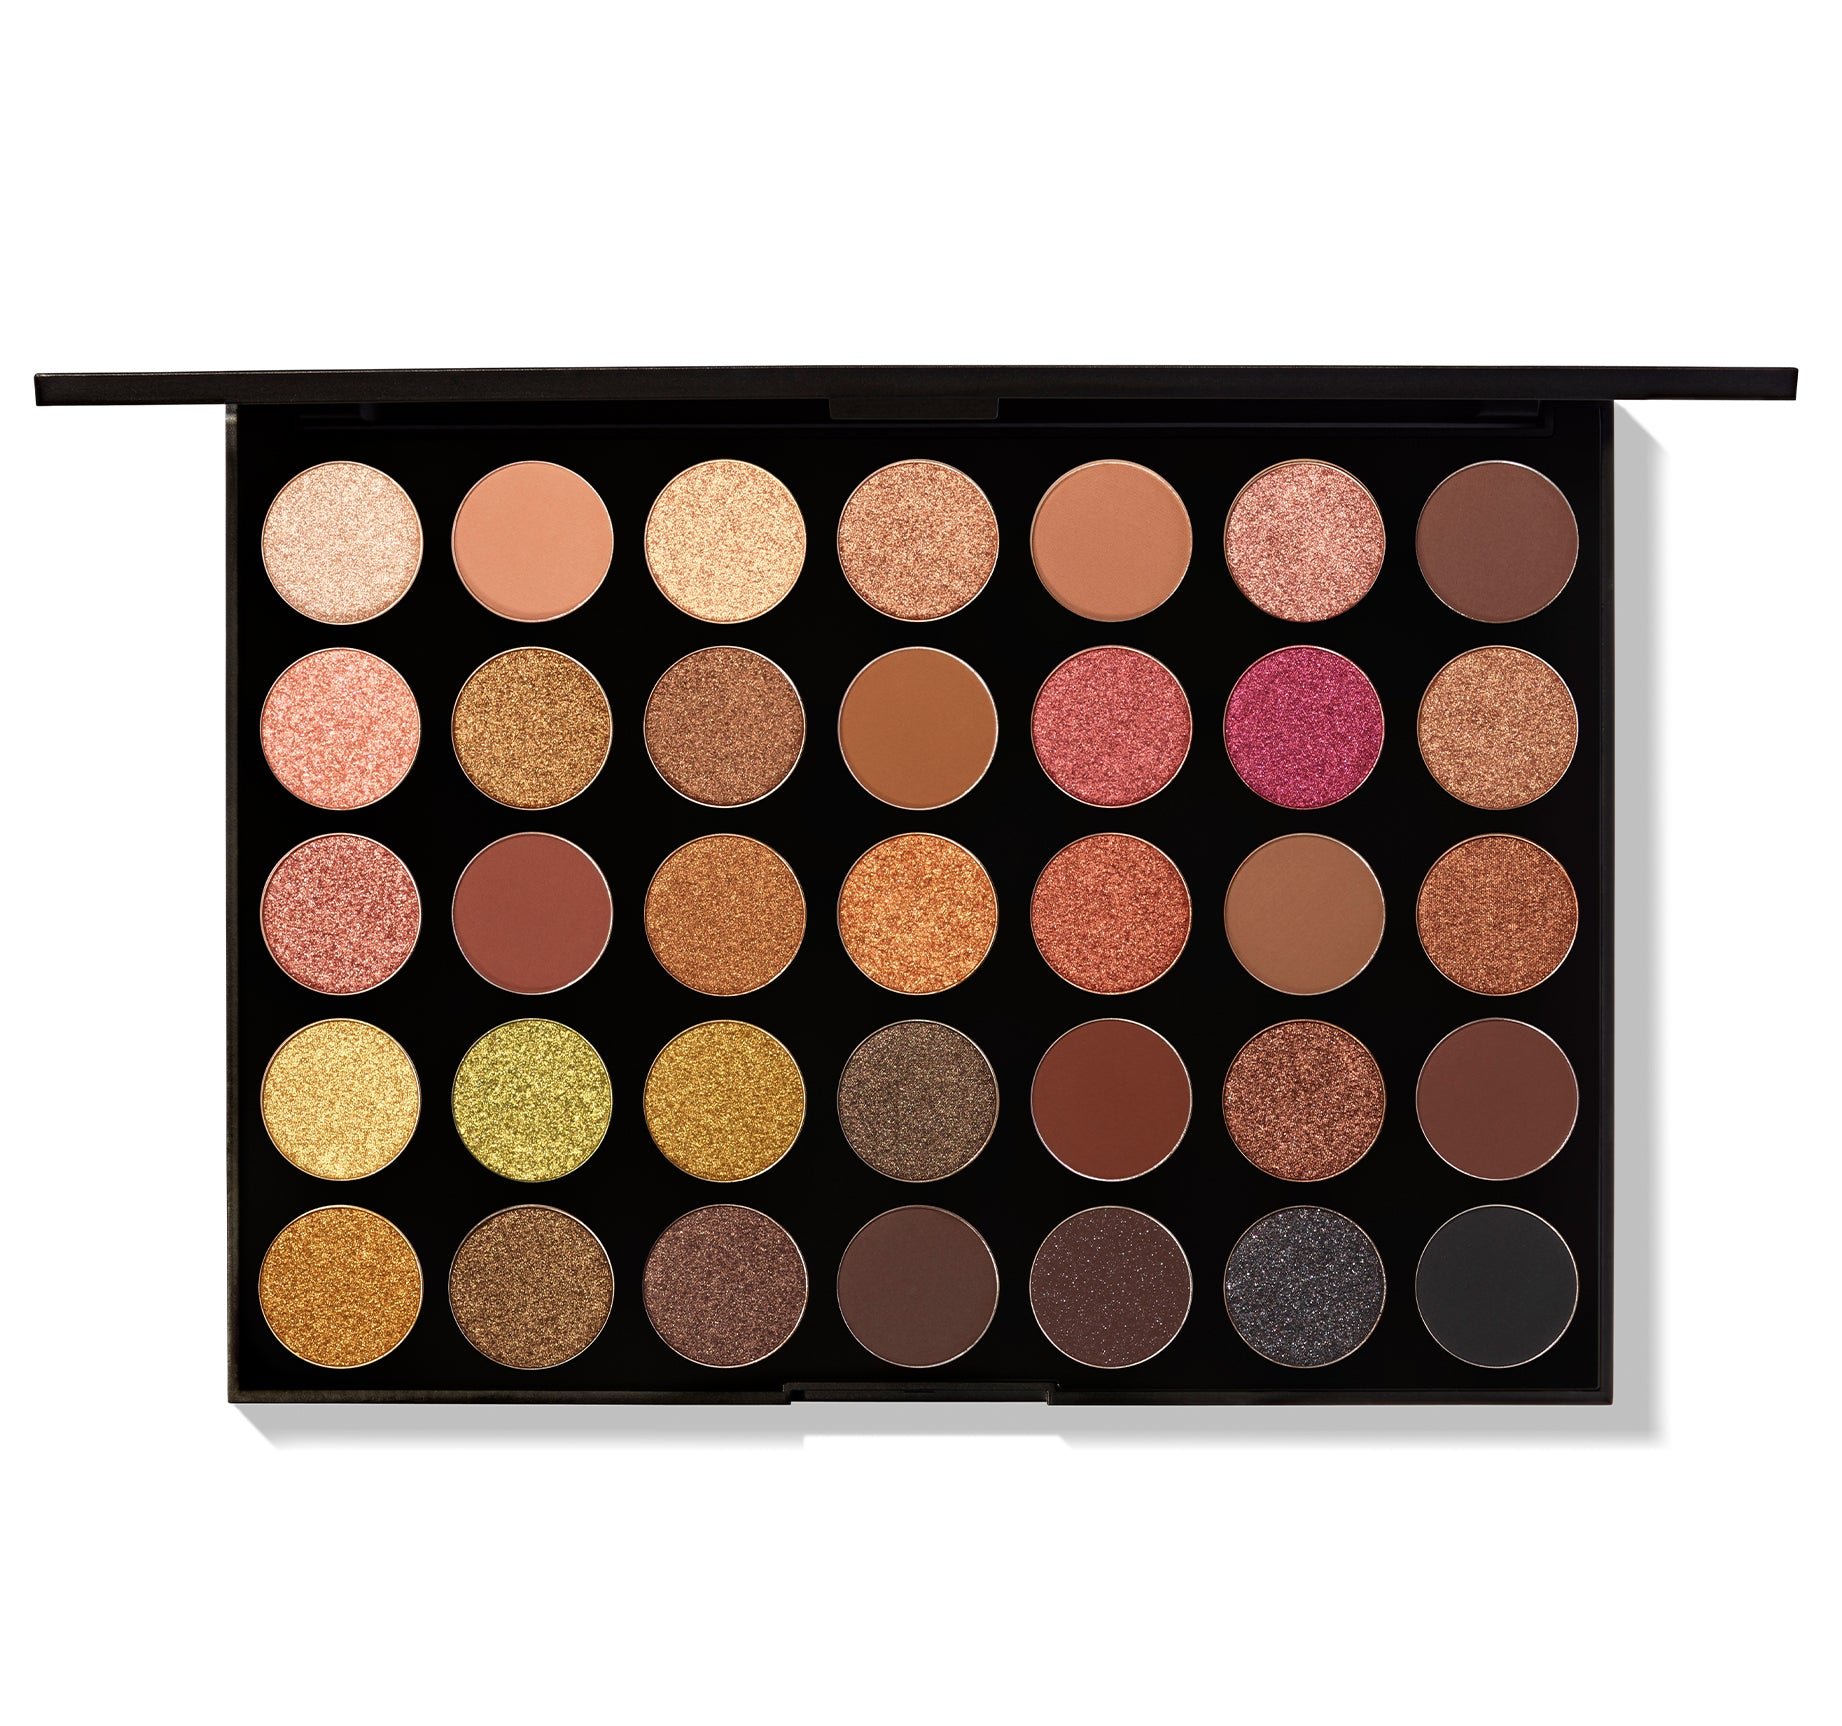 35G BRONZE GOALS ARTISTRY PALETTE, view larger image